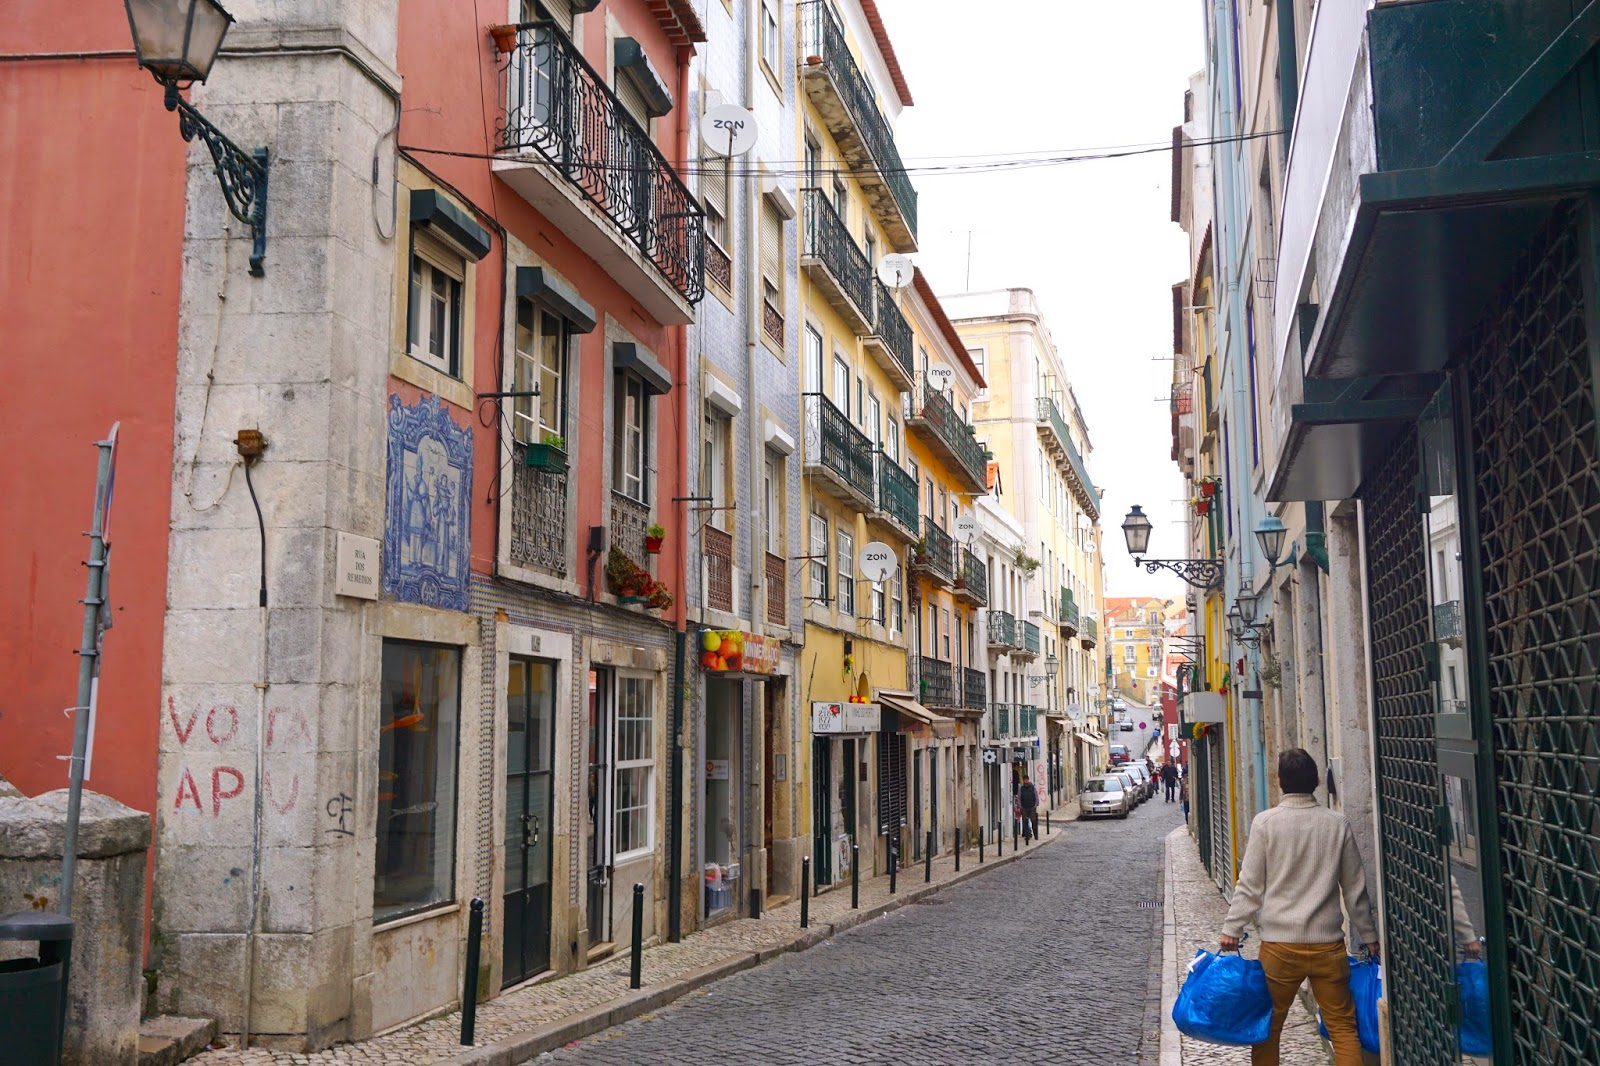 The streets of Lisbon's old neighbourhood Alfama on a Saturday afternoon